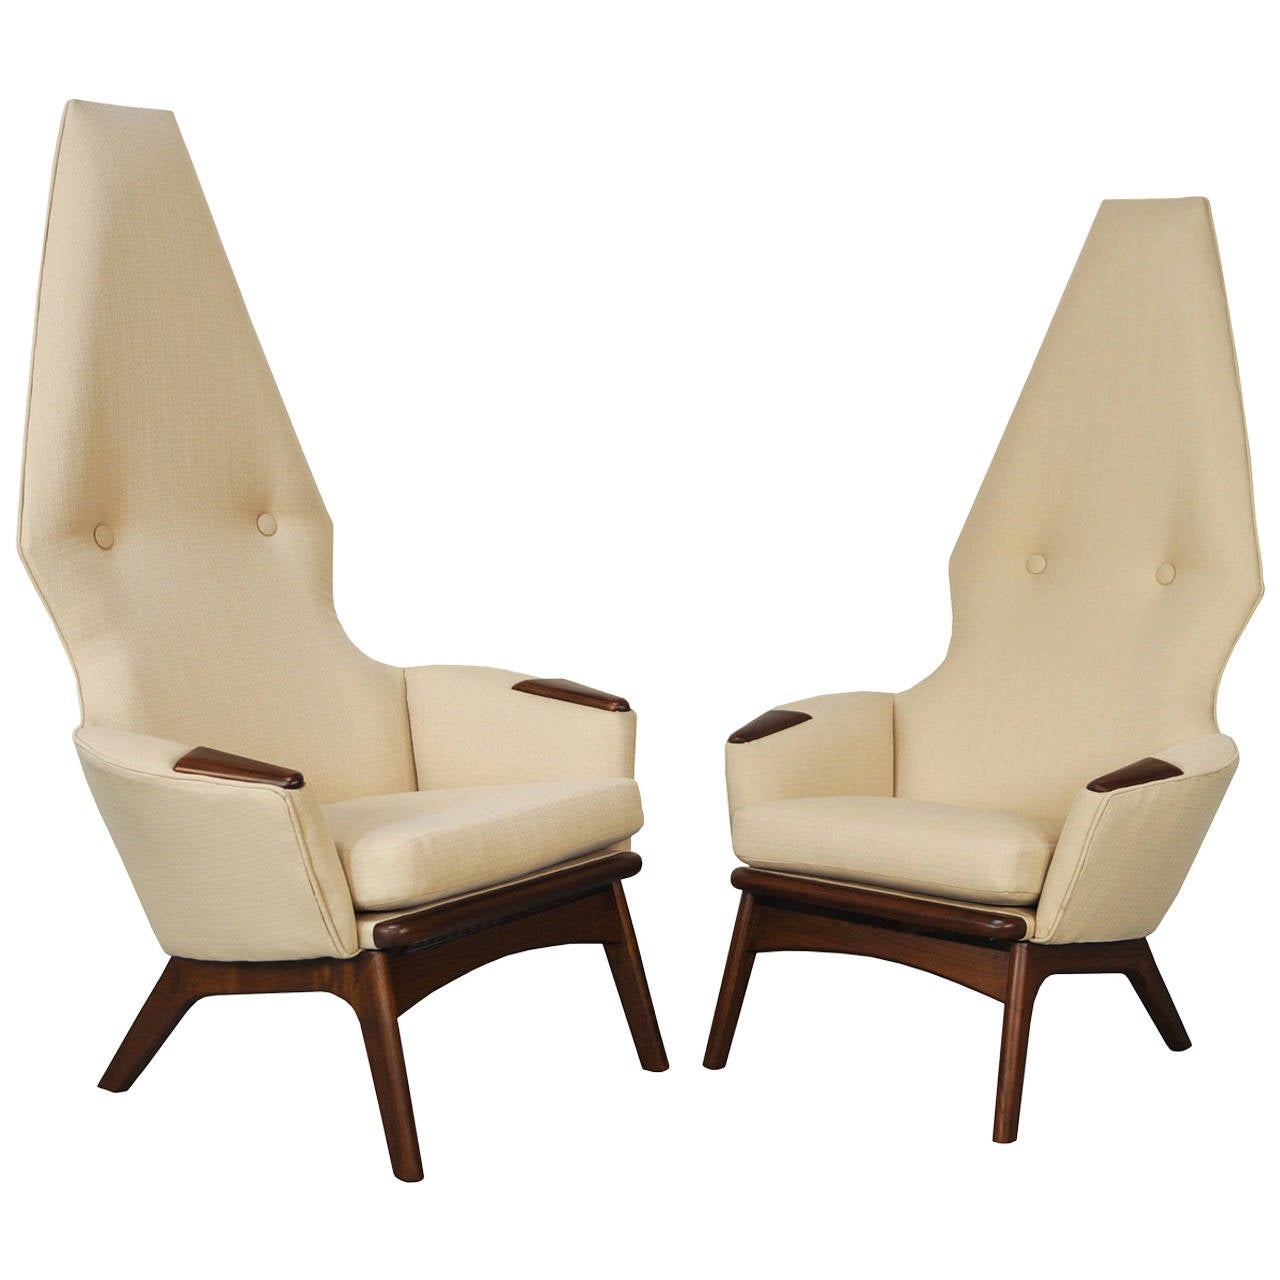 Vintage High Back Lounge Chairs By Adrian Pearsall At 1stdibs